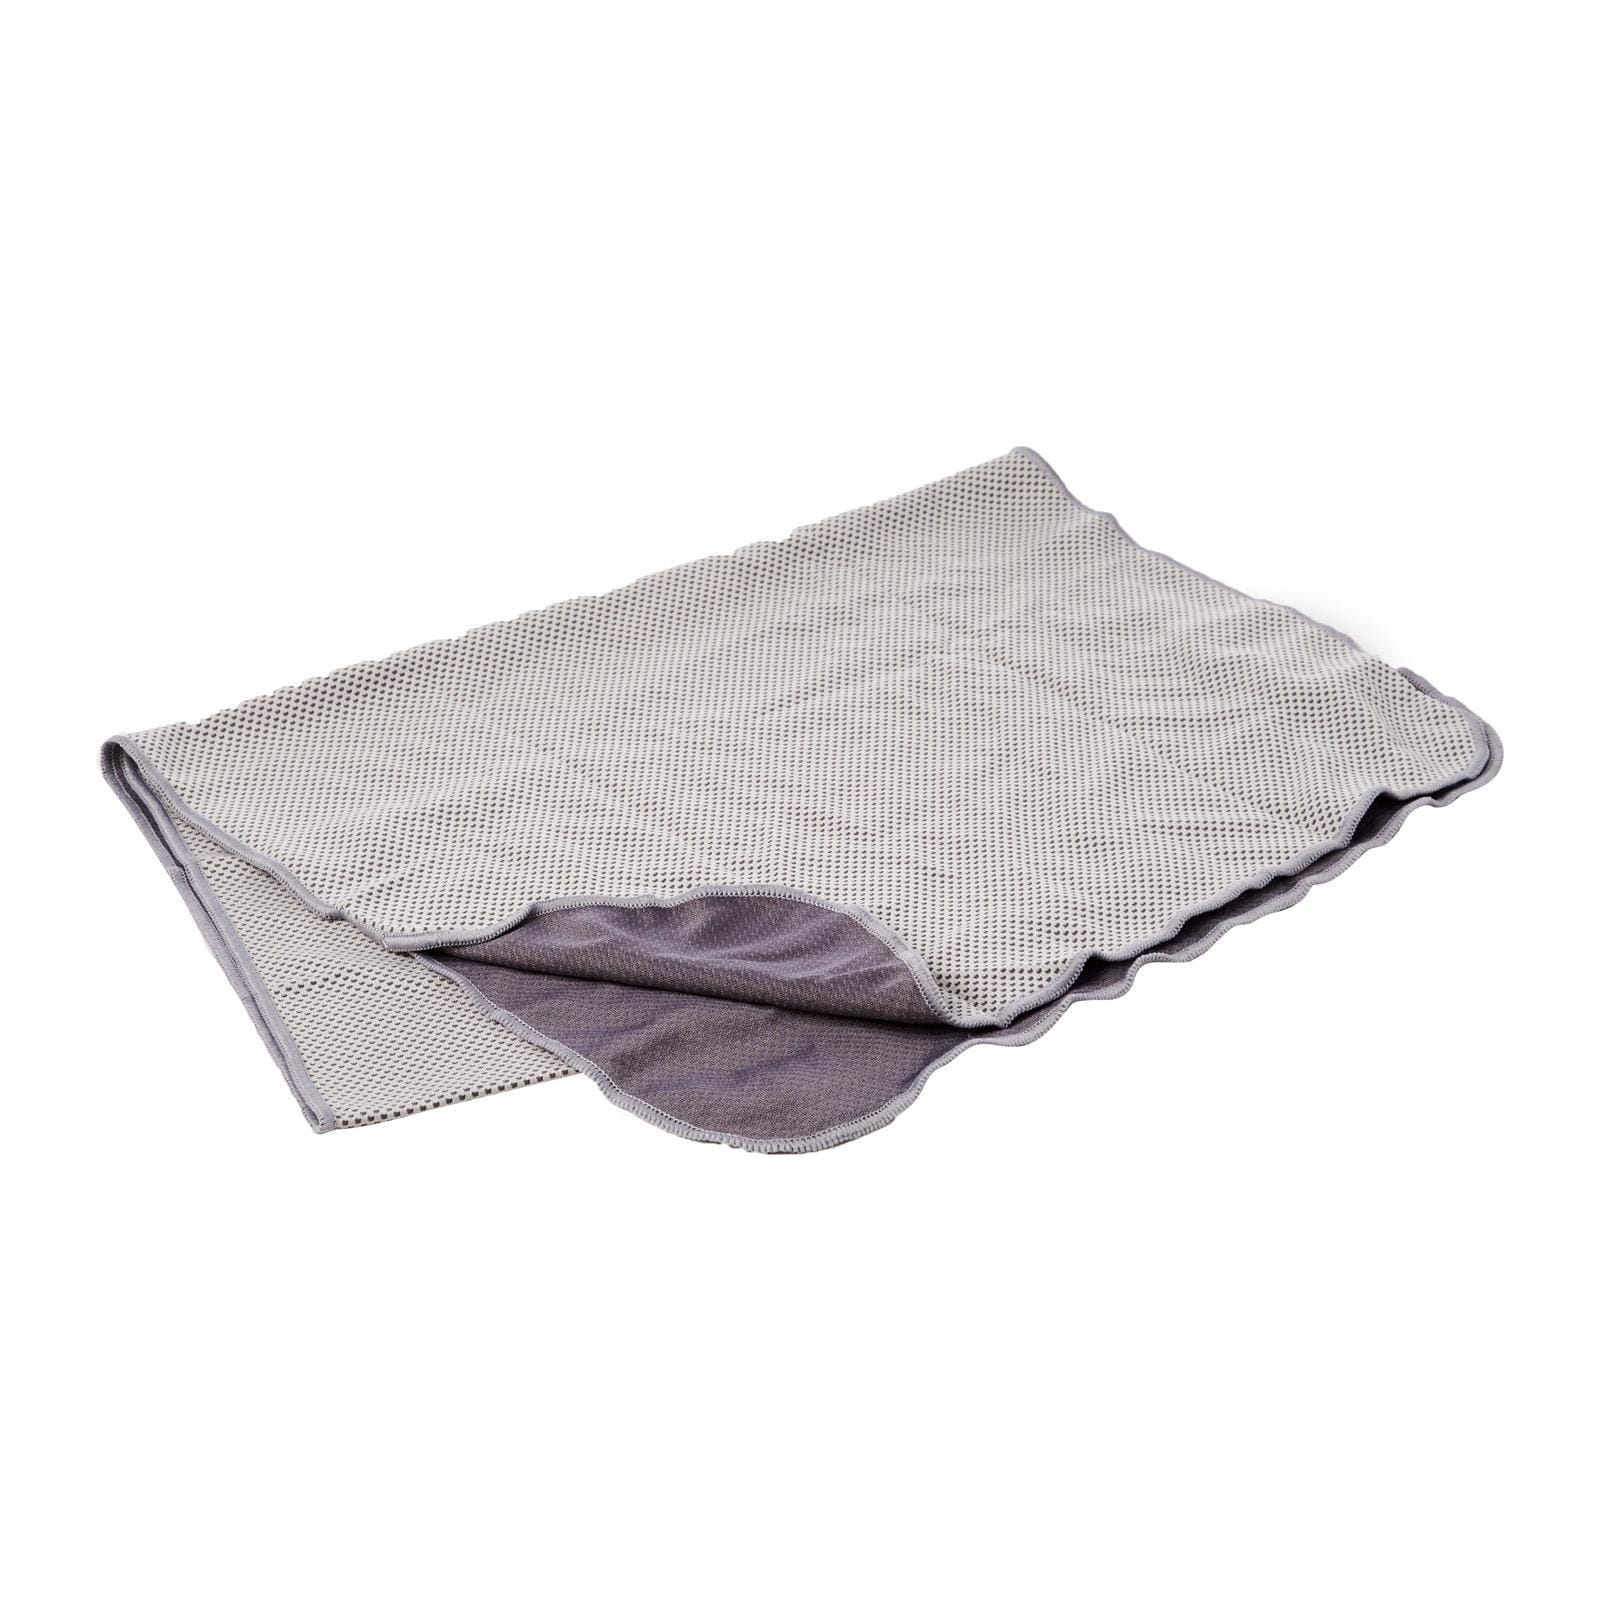 6b86865dcff Coolite Sports Towel In Light Grey - FUNFIT